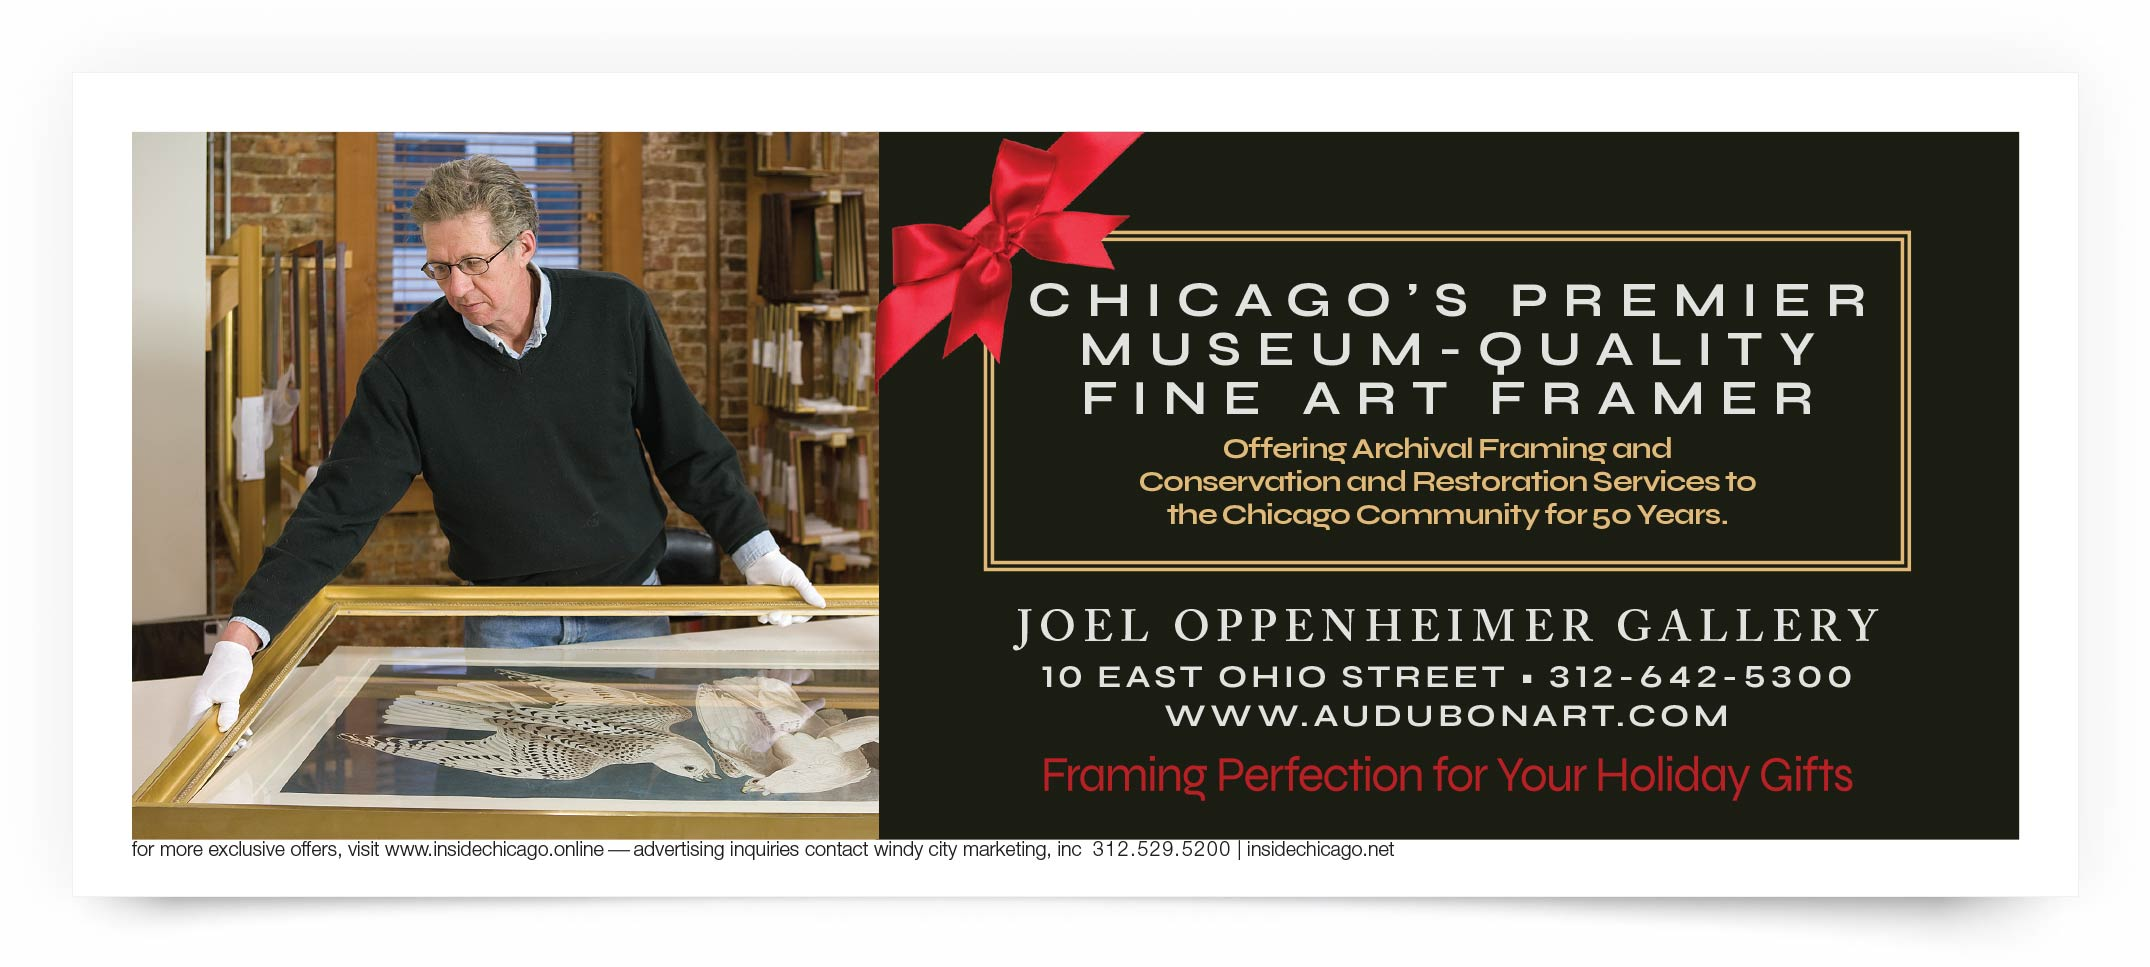 Joel Oppenheimer Gallery Chicago Coupon Intro